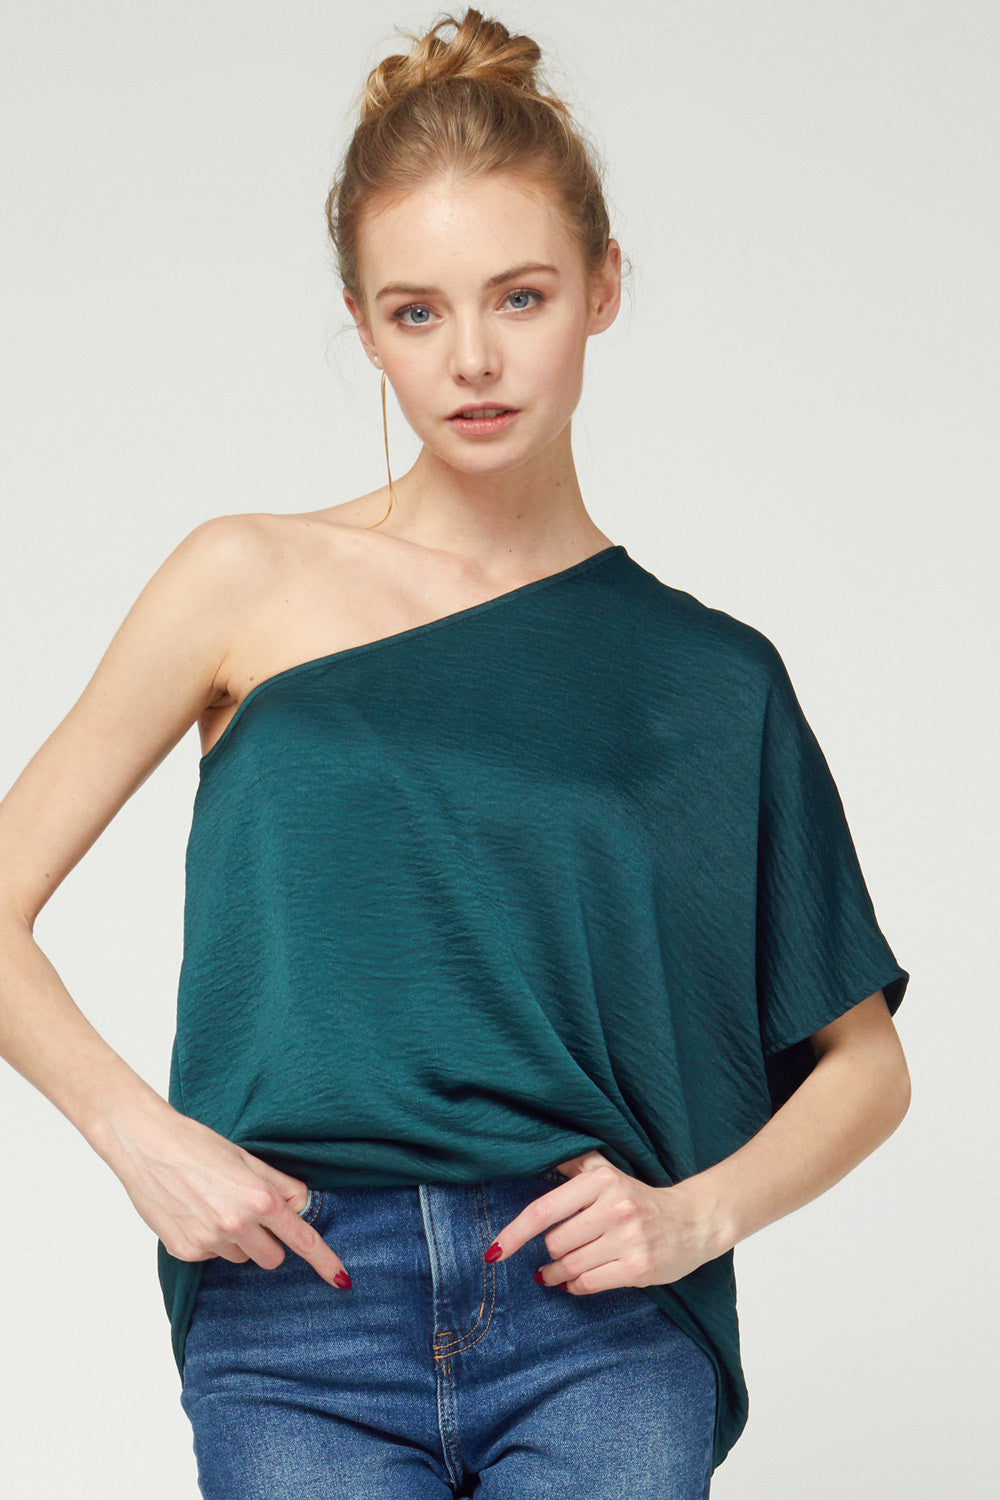 One-shoulder deep green date night top - the Diana